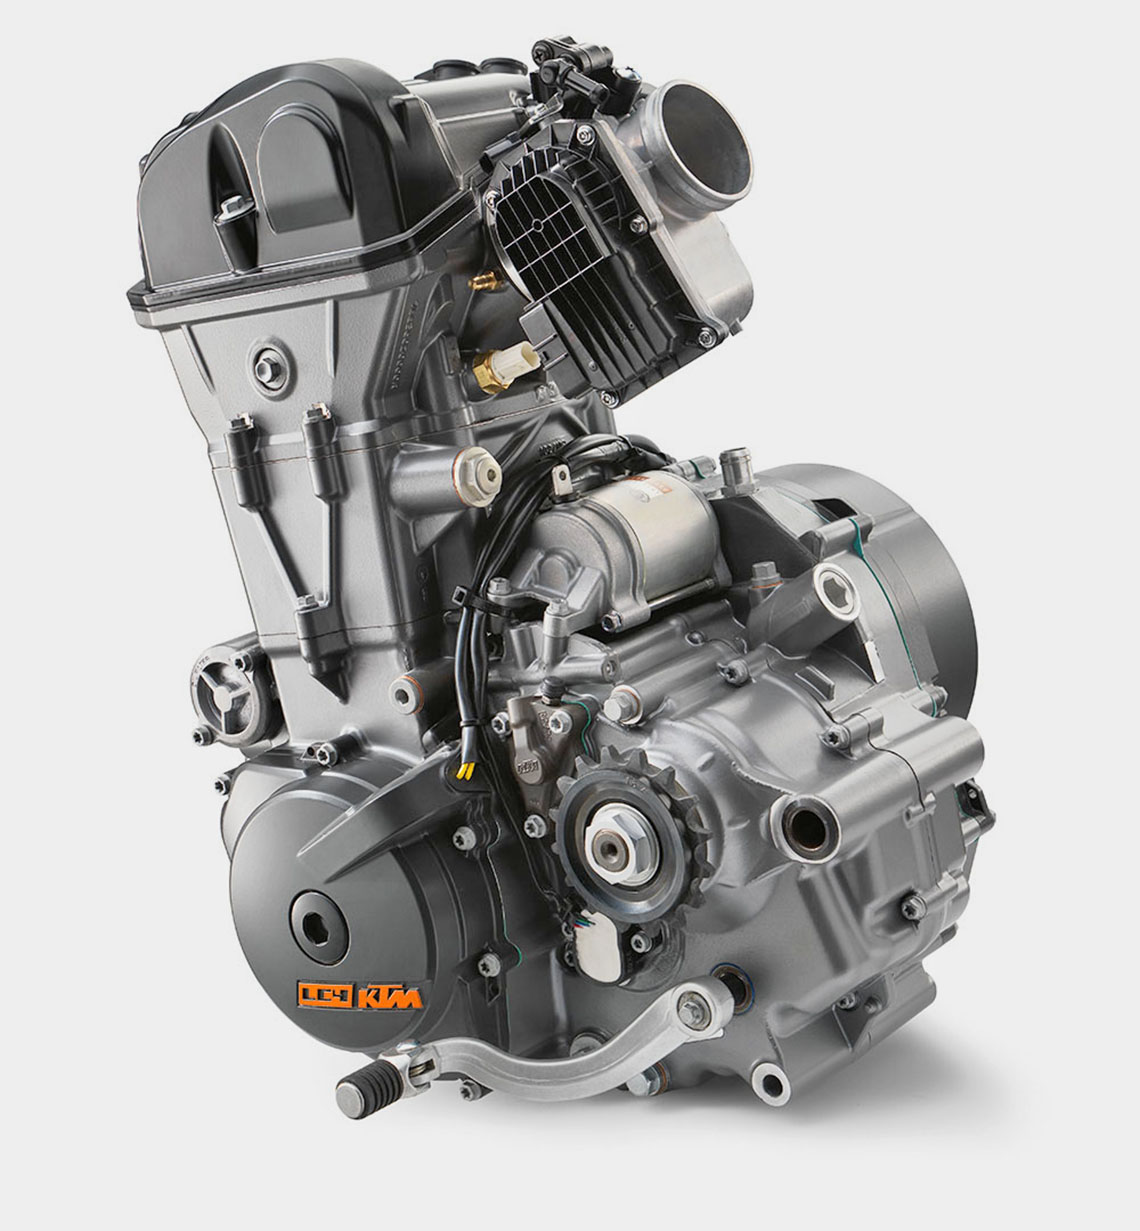 Yamaha 4 Cylinder Motorcycle Engine: Types Of Motorcycle Engines